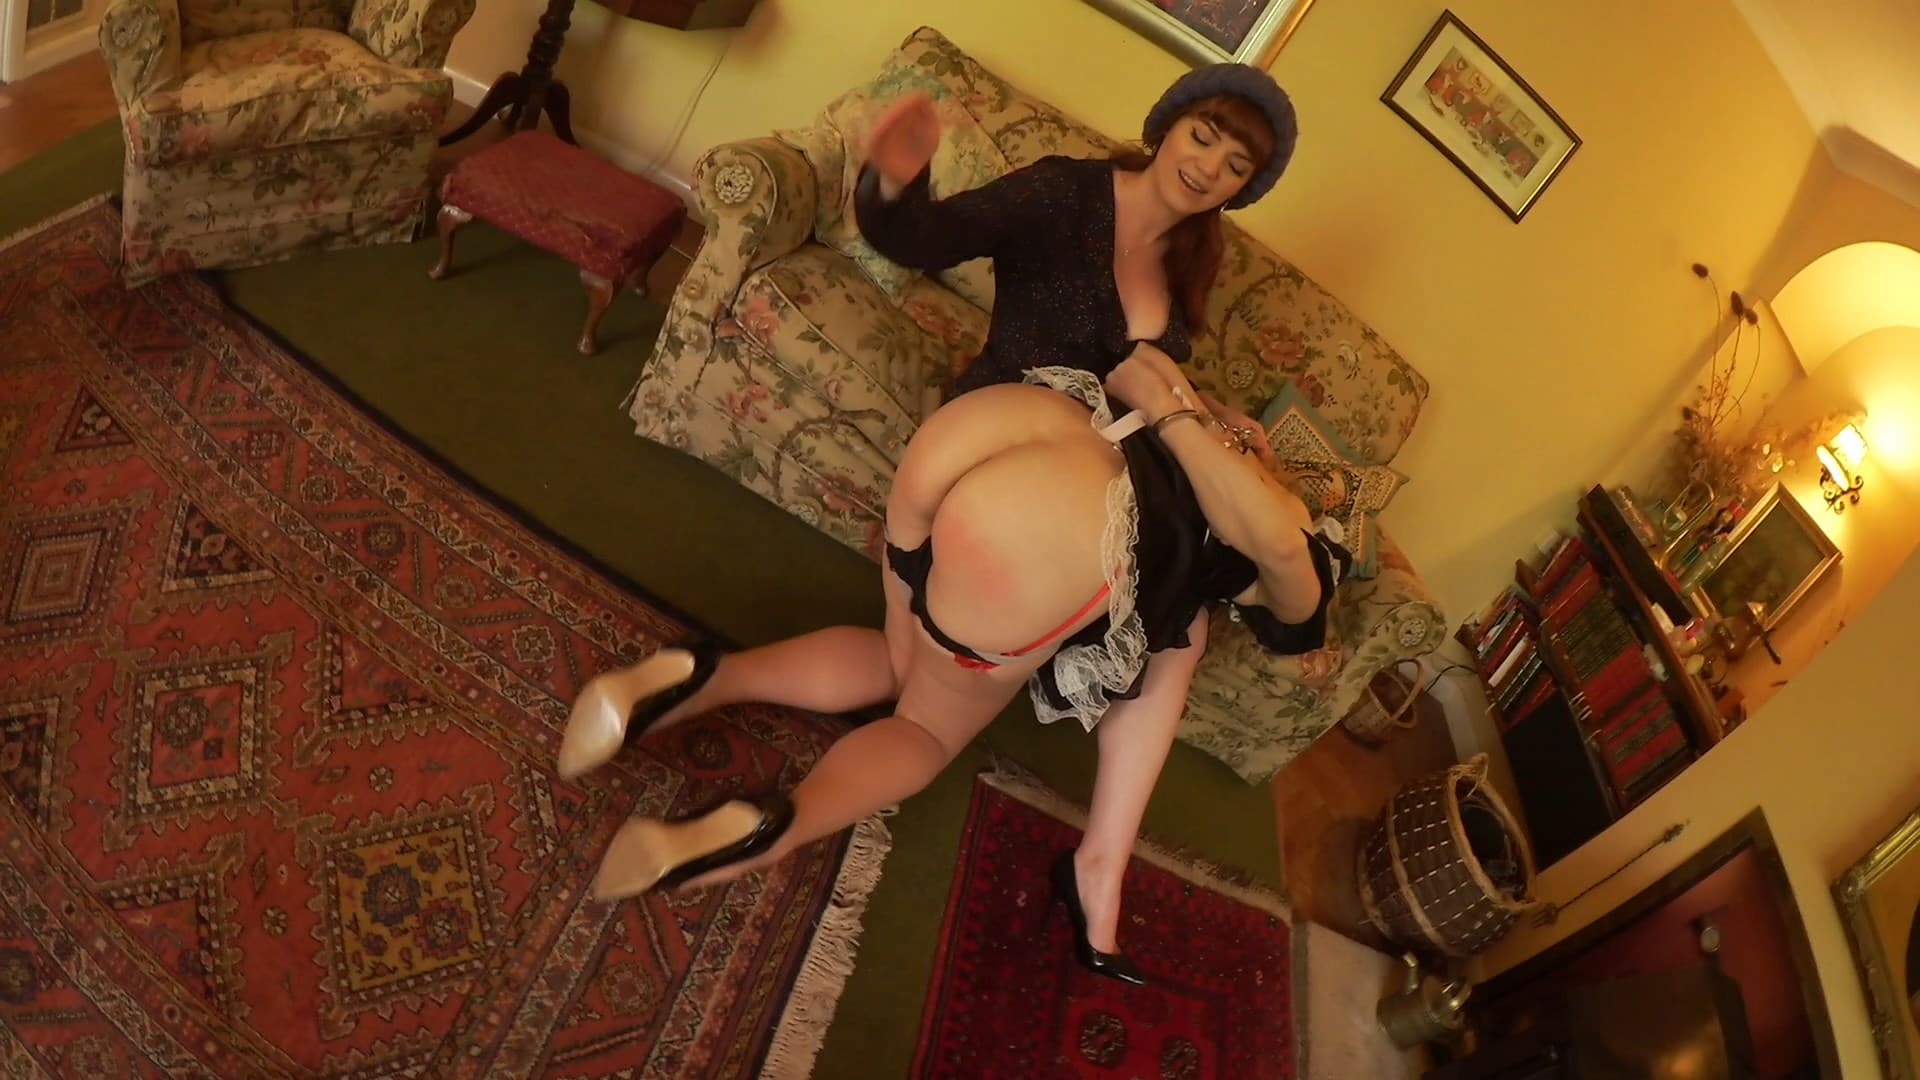 Zoe Page, Ariel Anderssen – Maid and Mistress Hogtied Together